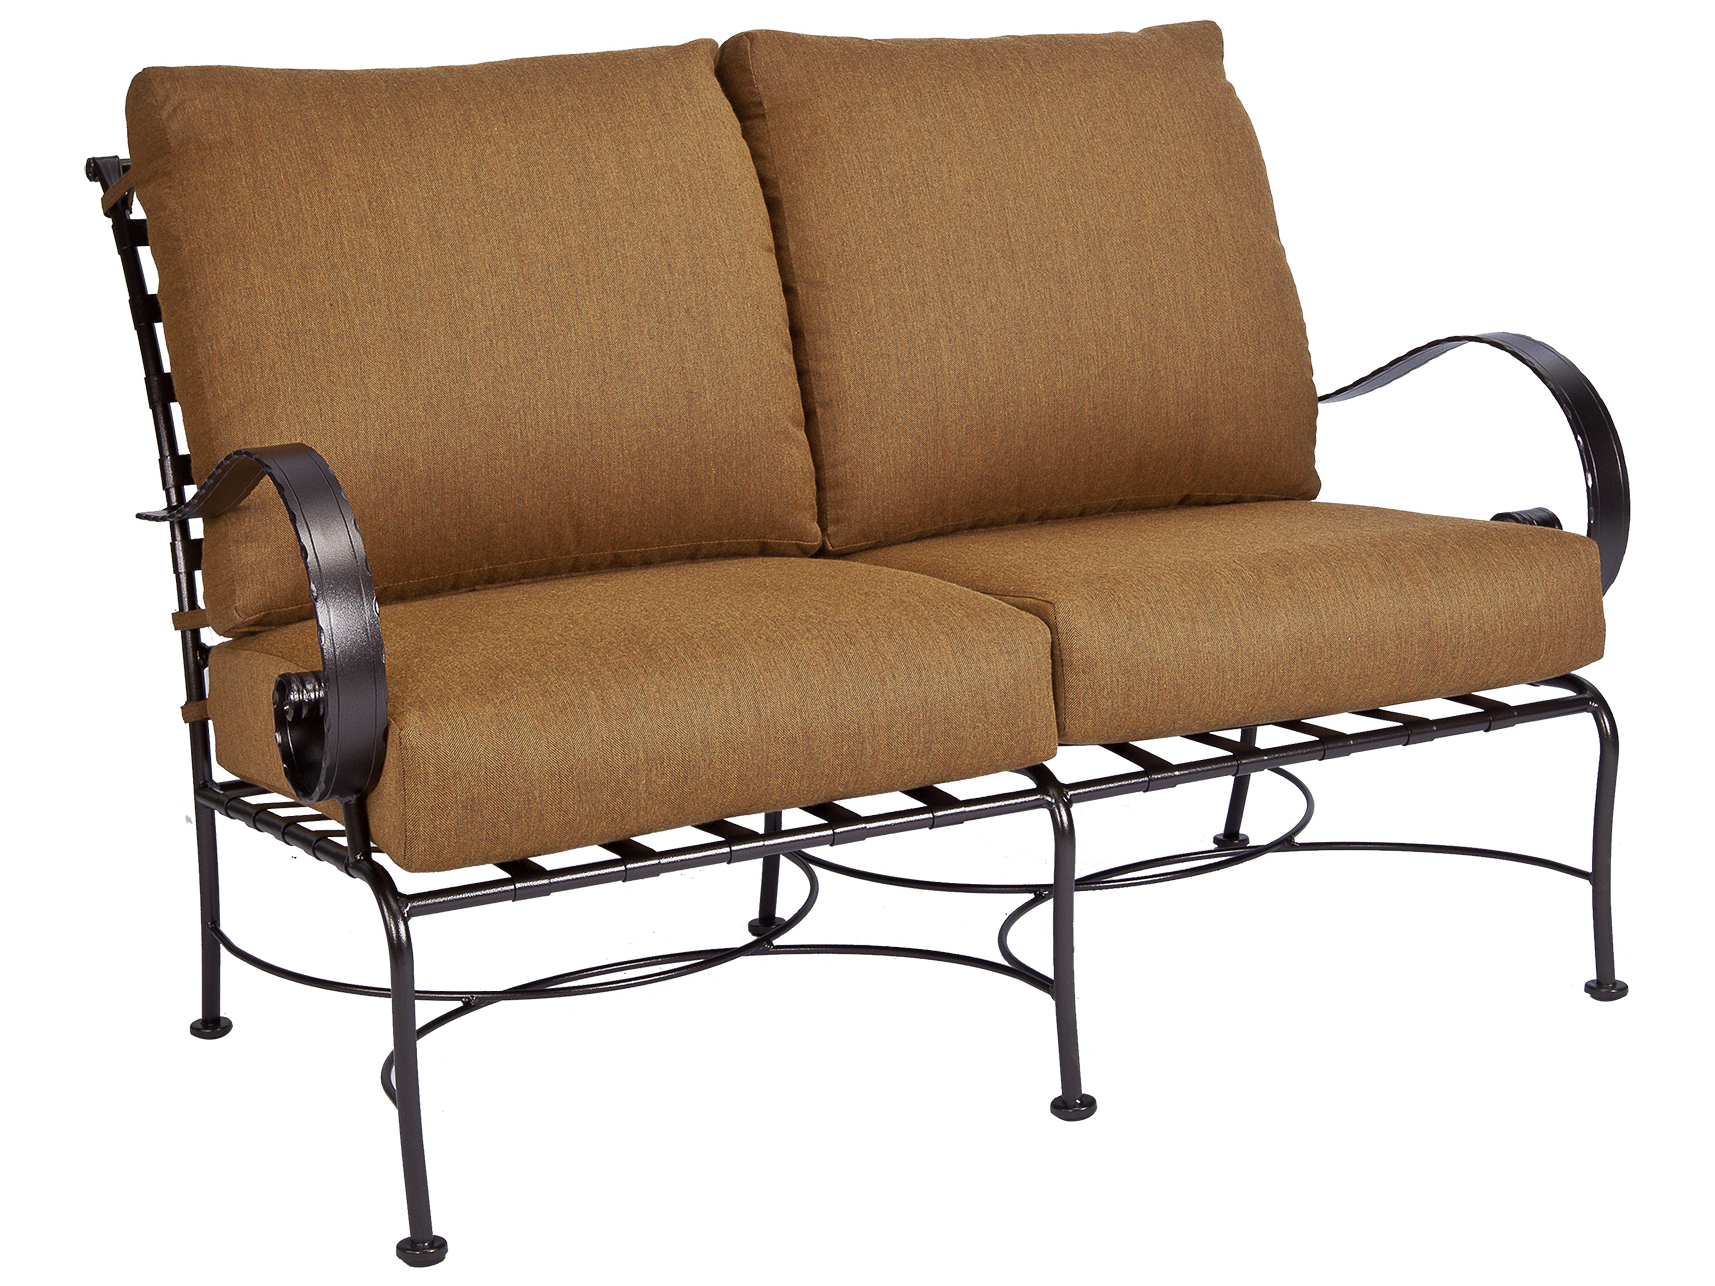 Ow Lee Classico Wide Arms Wrought Iron Loveseat 956 2sw